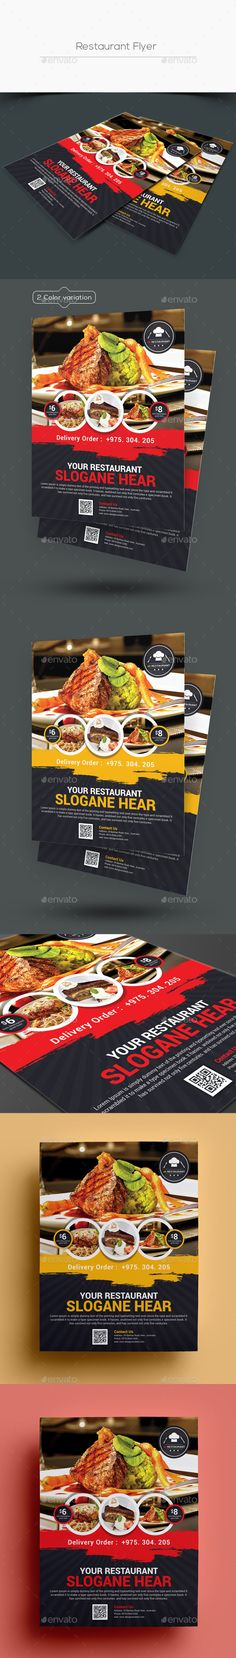 Restaurant #Flyer - #Restaurant #Flyers Download here   - restaurant flyer